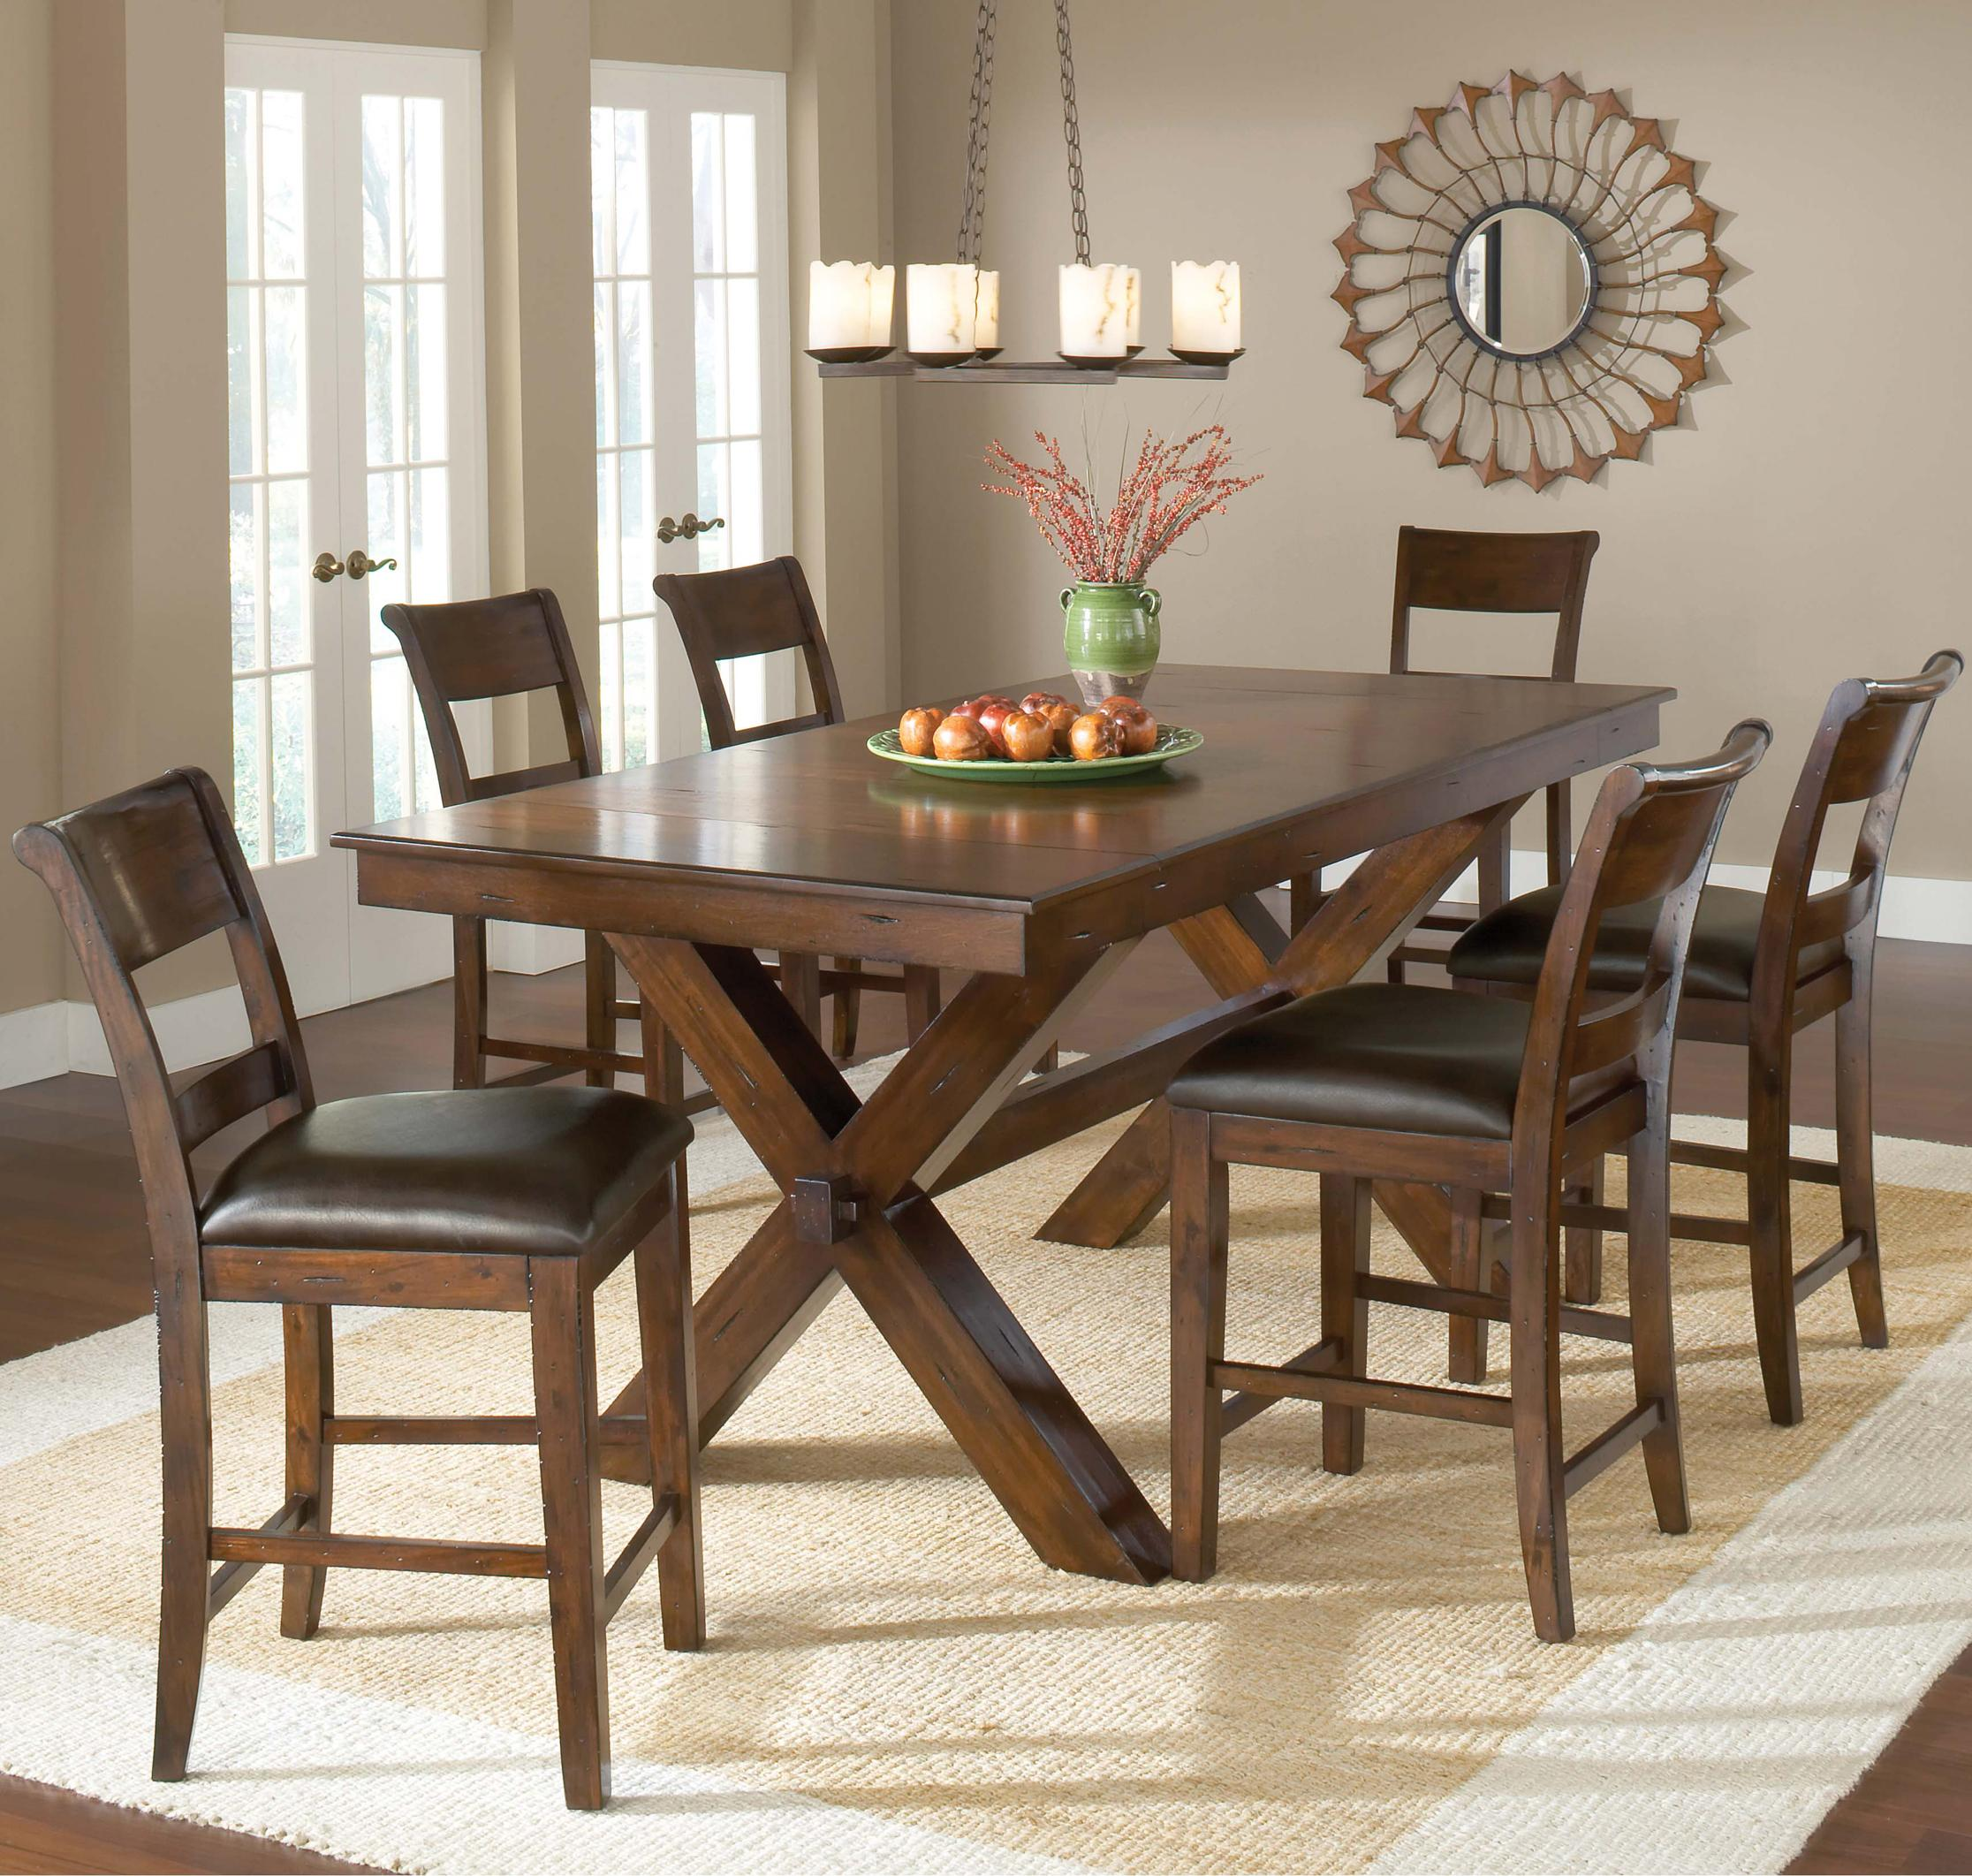 Exceptionnel Hillsdale Park Avenue 7 Piece Pub Table And Stool Set | Boulevard Home  Furnishings | Pub Table And Stool Sets